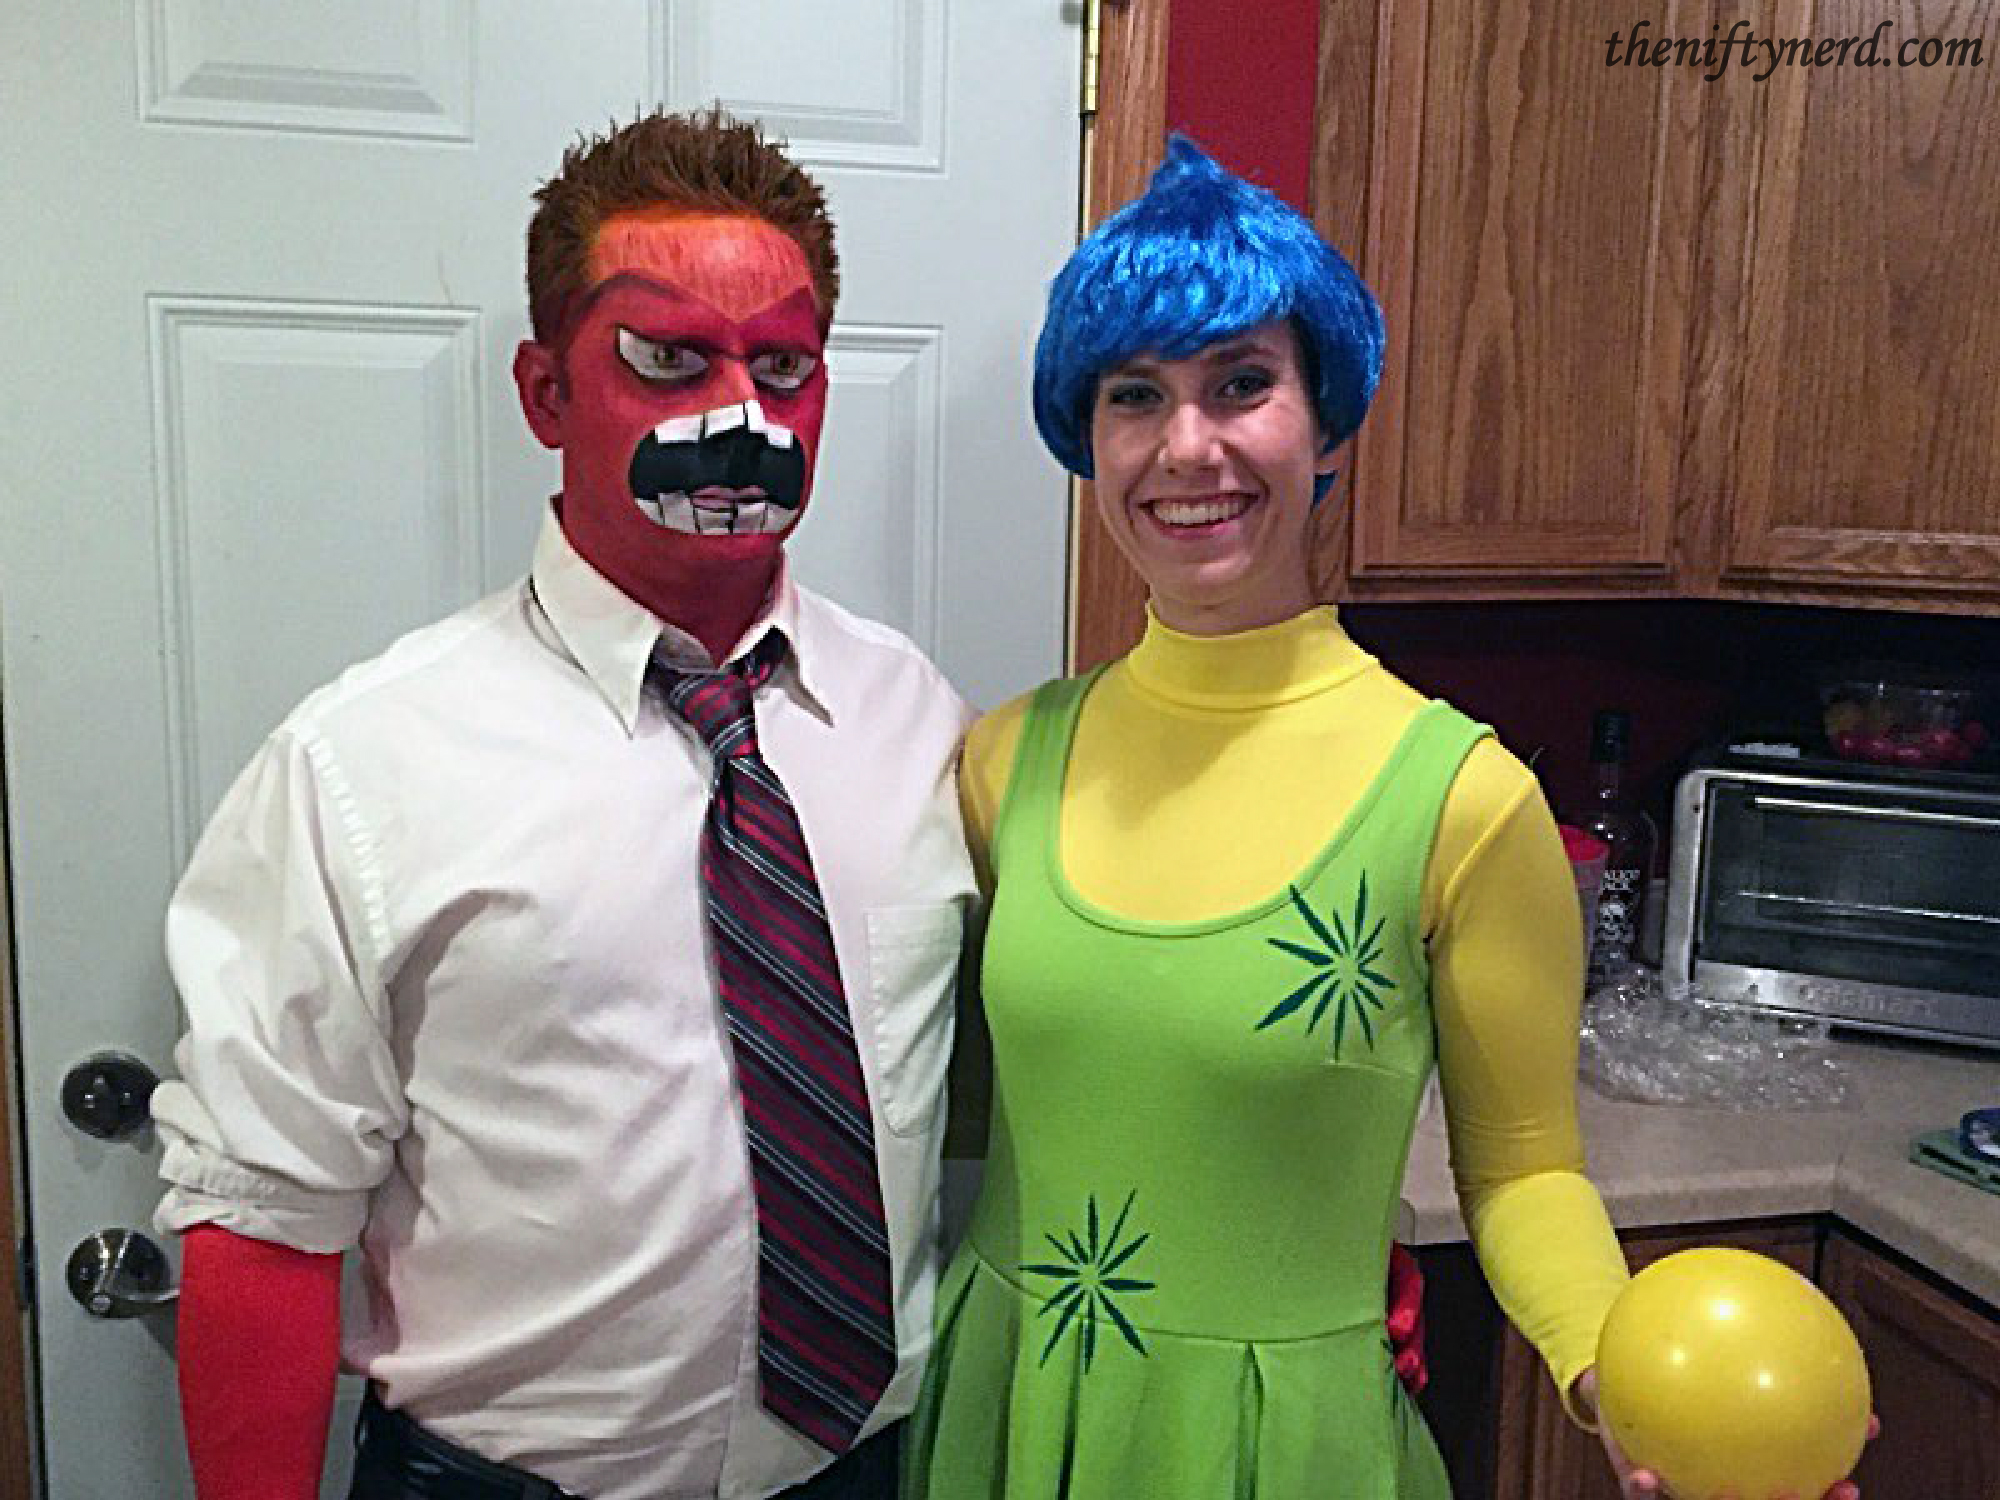 Anger and Joy Halloween costumes for Inside Out